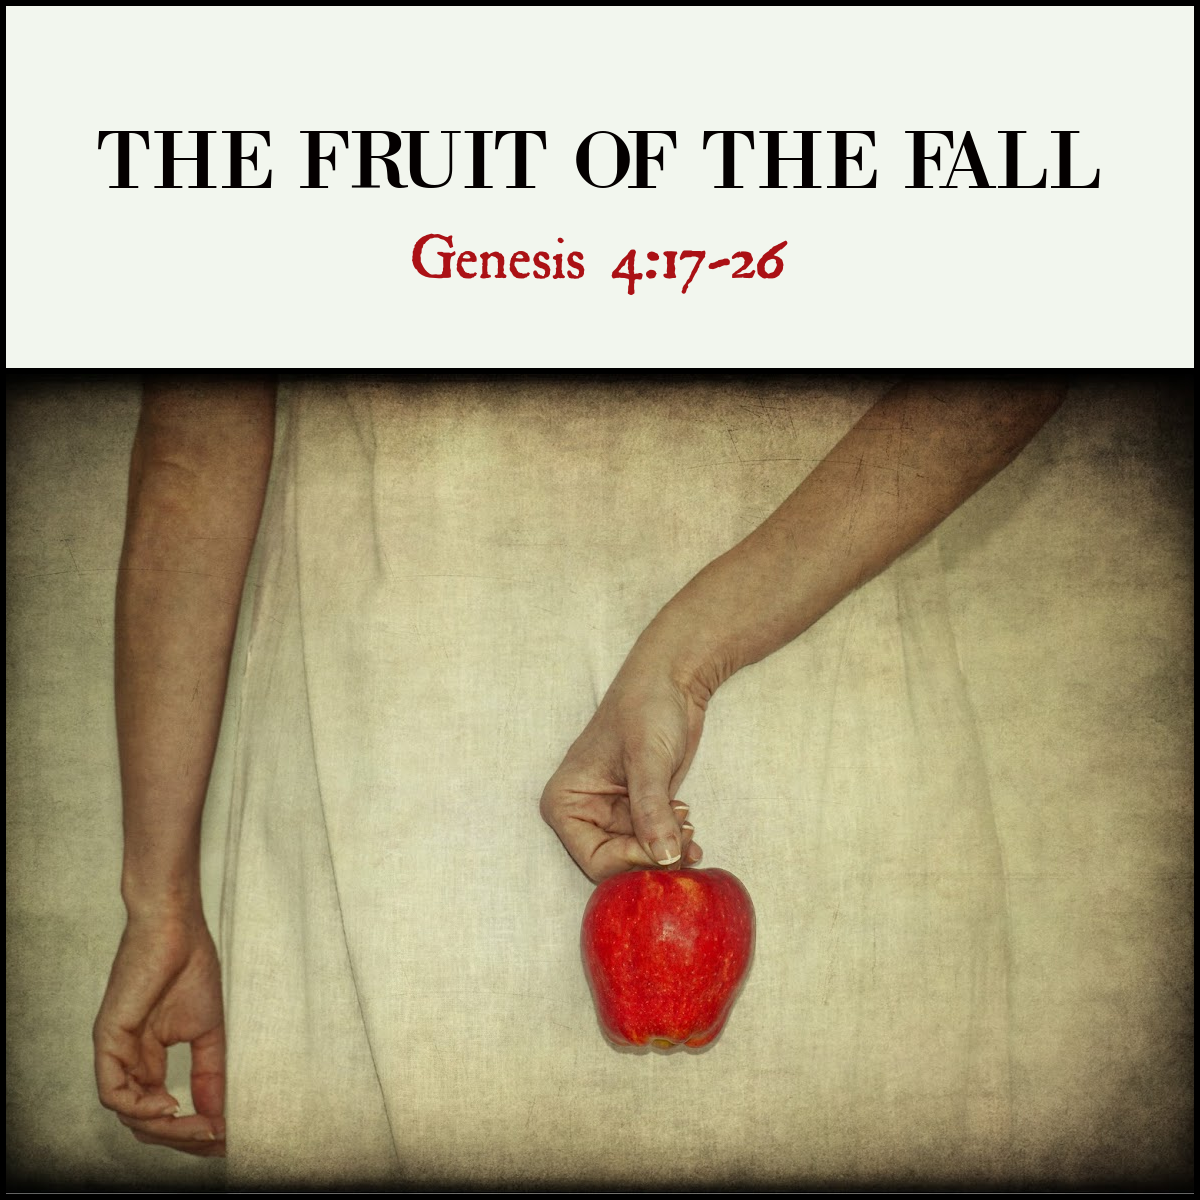 Fruit of the Fall 2 image